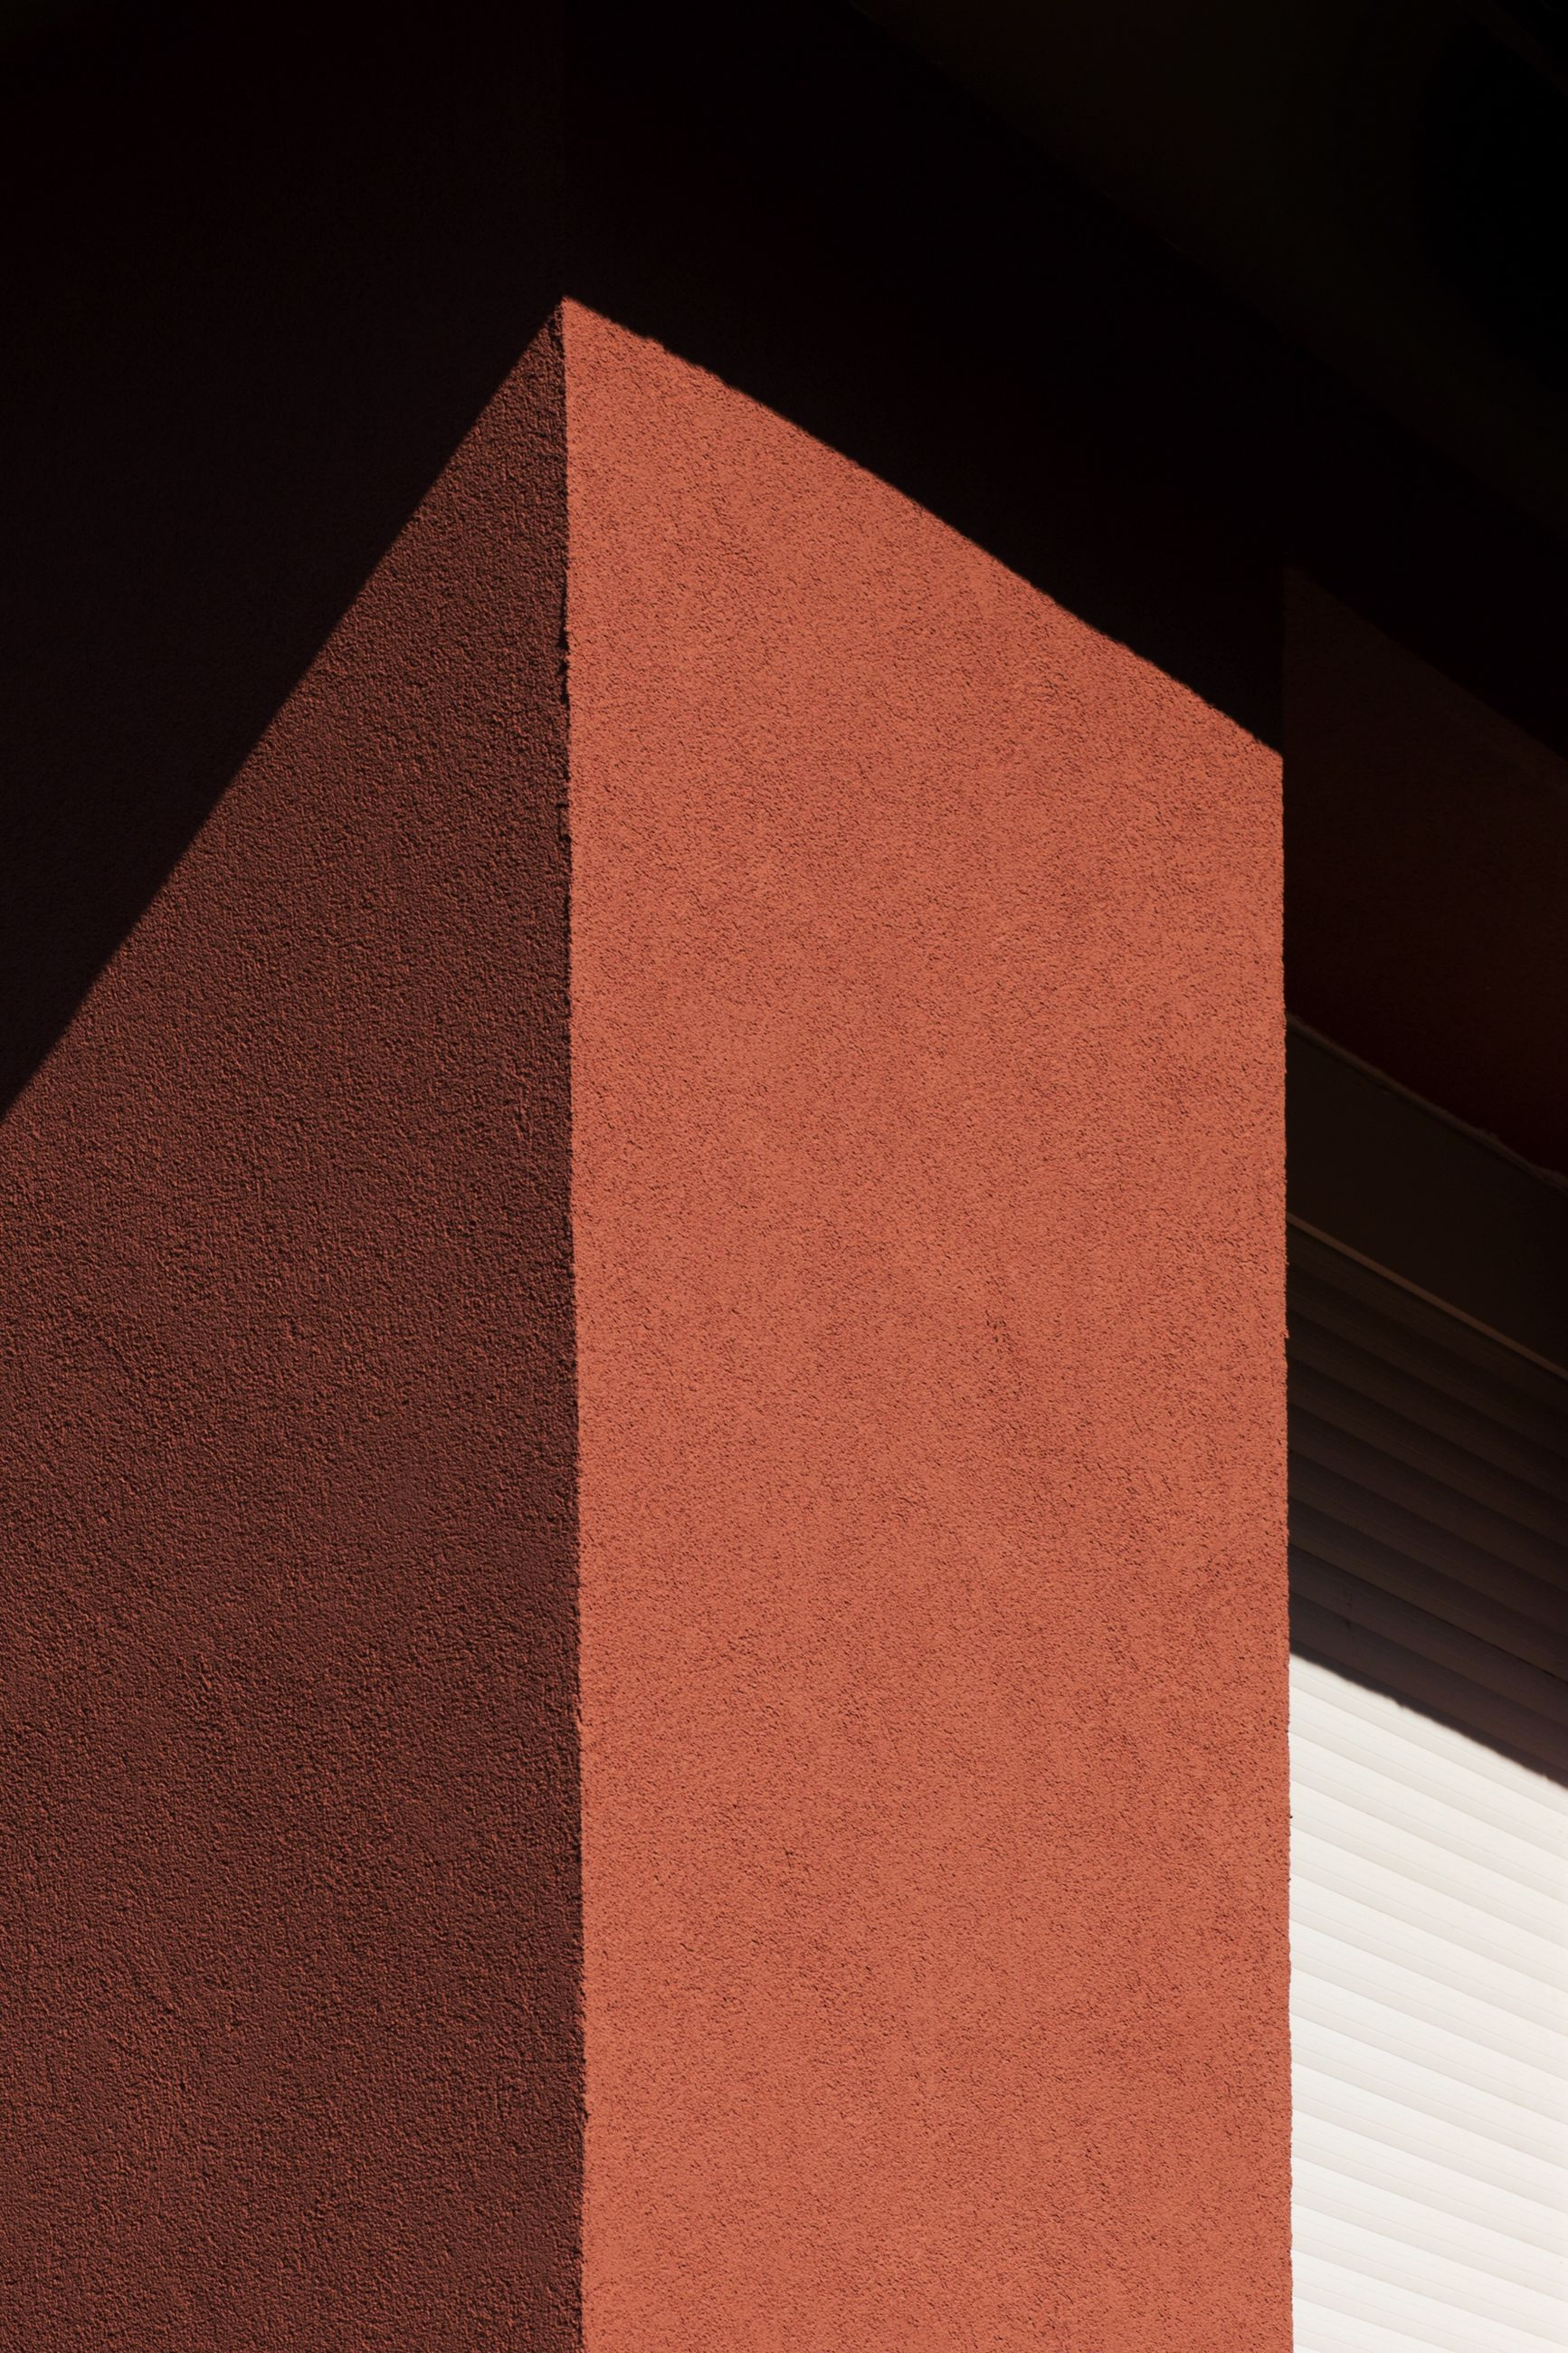 architecture, built structure, no people, wall - building feature, low angle view, sunlight, day, brown, building exterior, red, building, pattern, nature, geometric shape, close-up, orange color, outdoors, shadow, paper